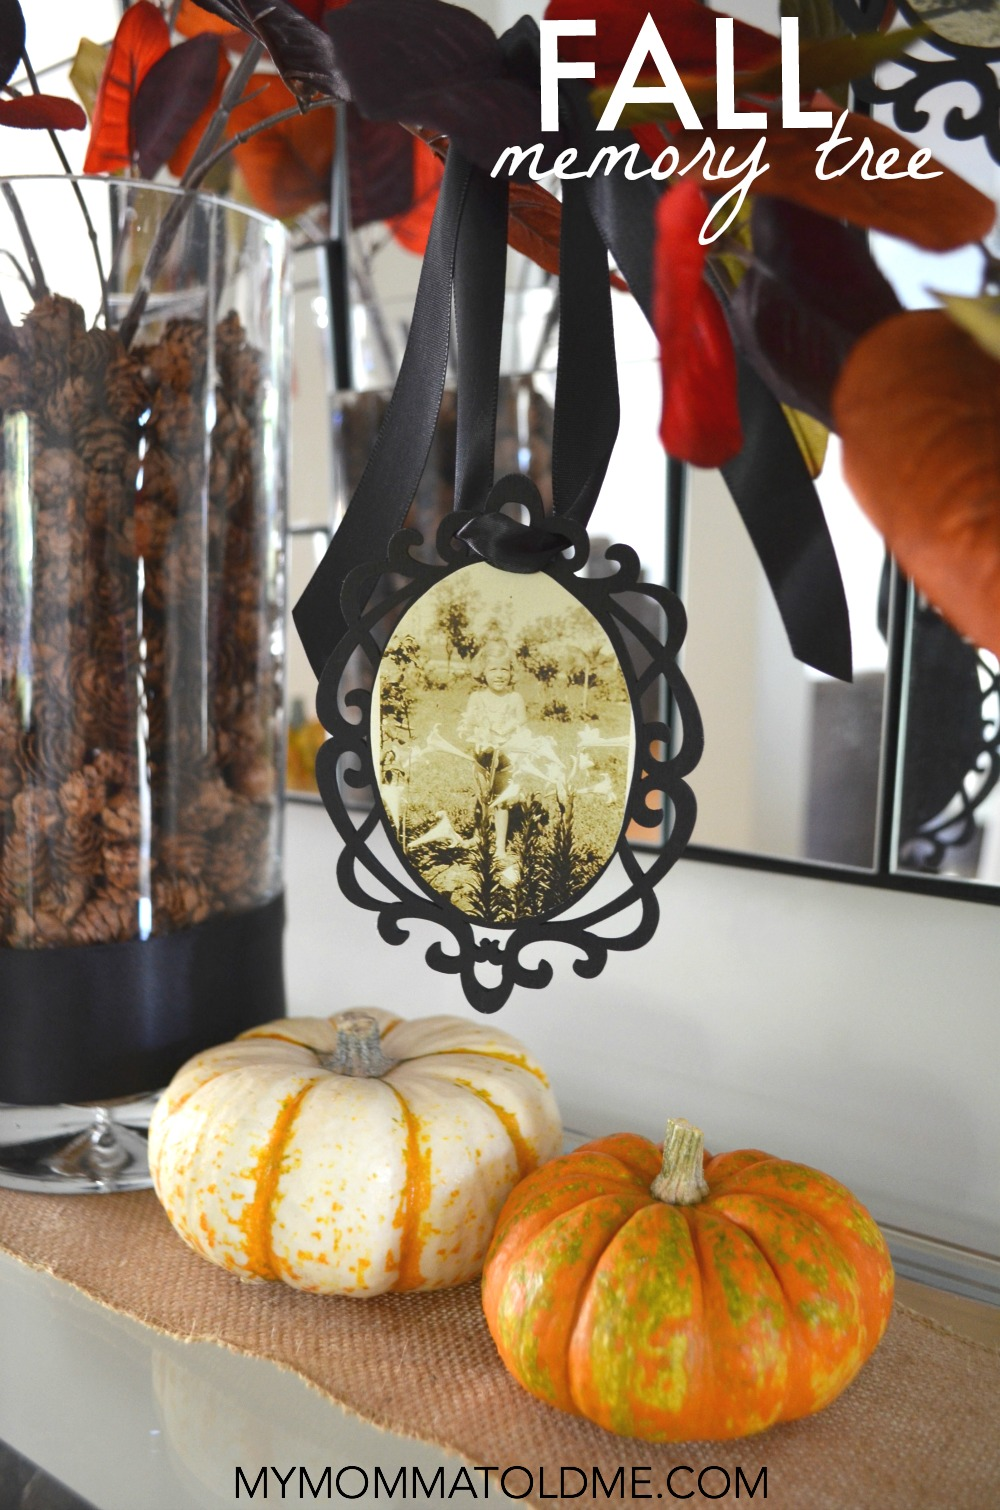 diy fall decor ideas family memory tree autumn decor ideas